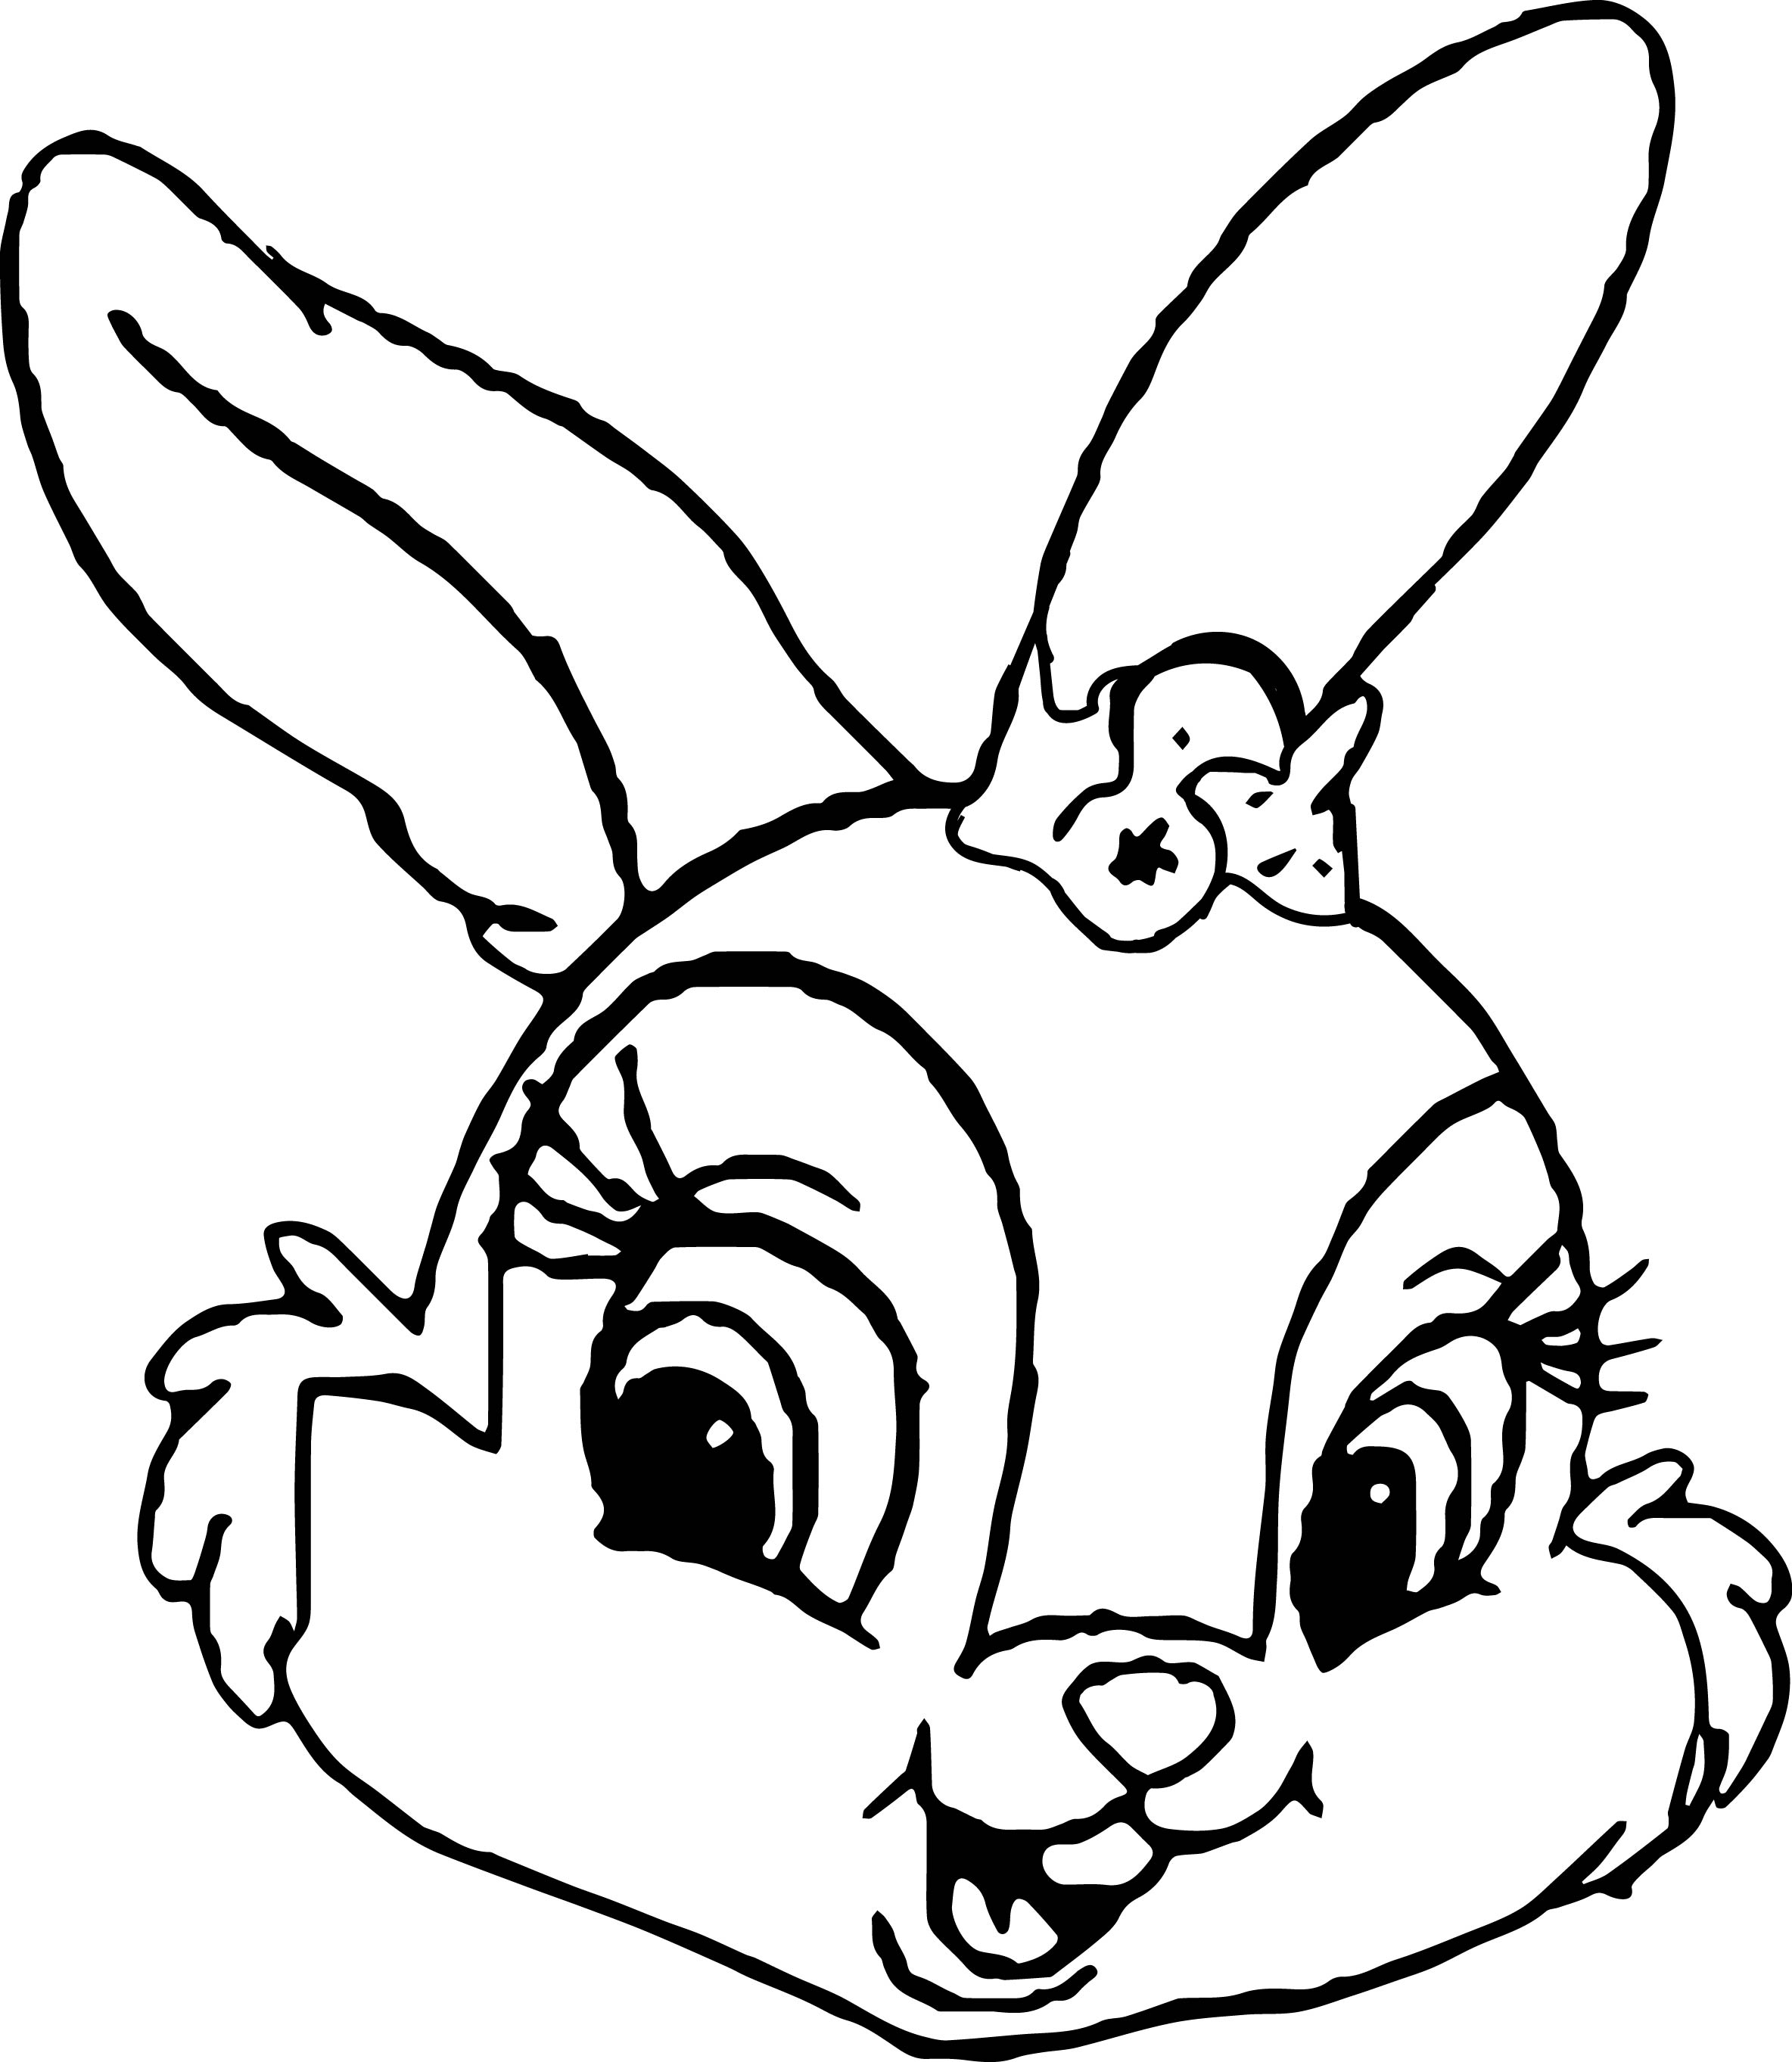 2368x2725 Coloring Pages Of Ears